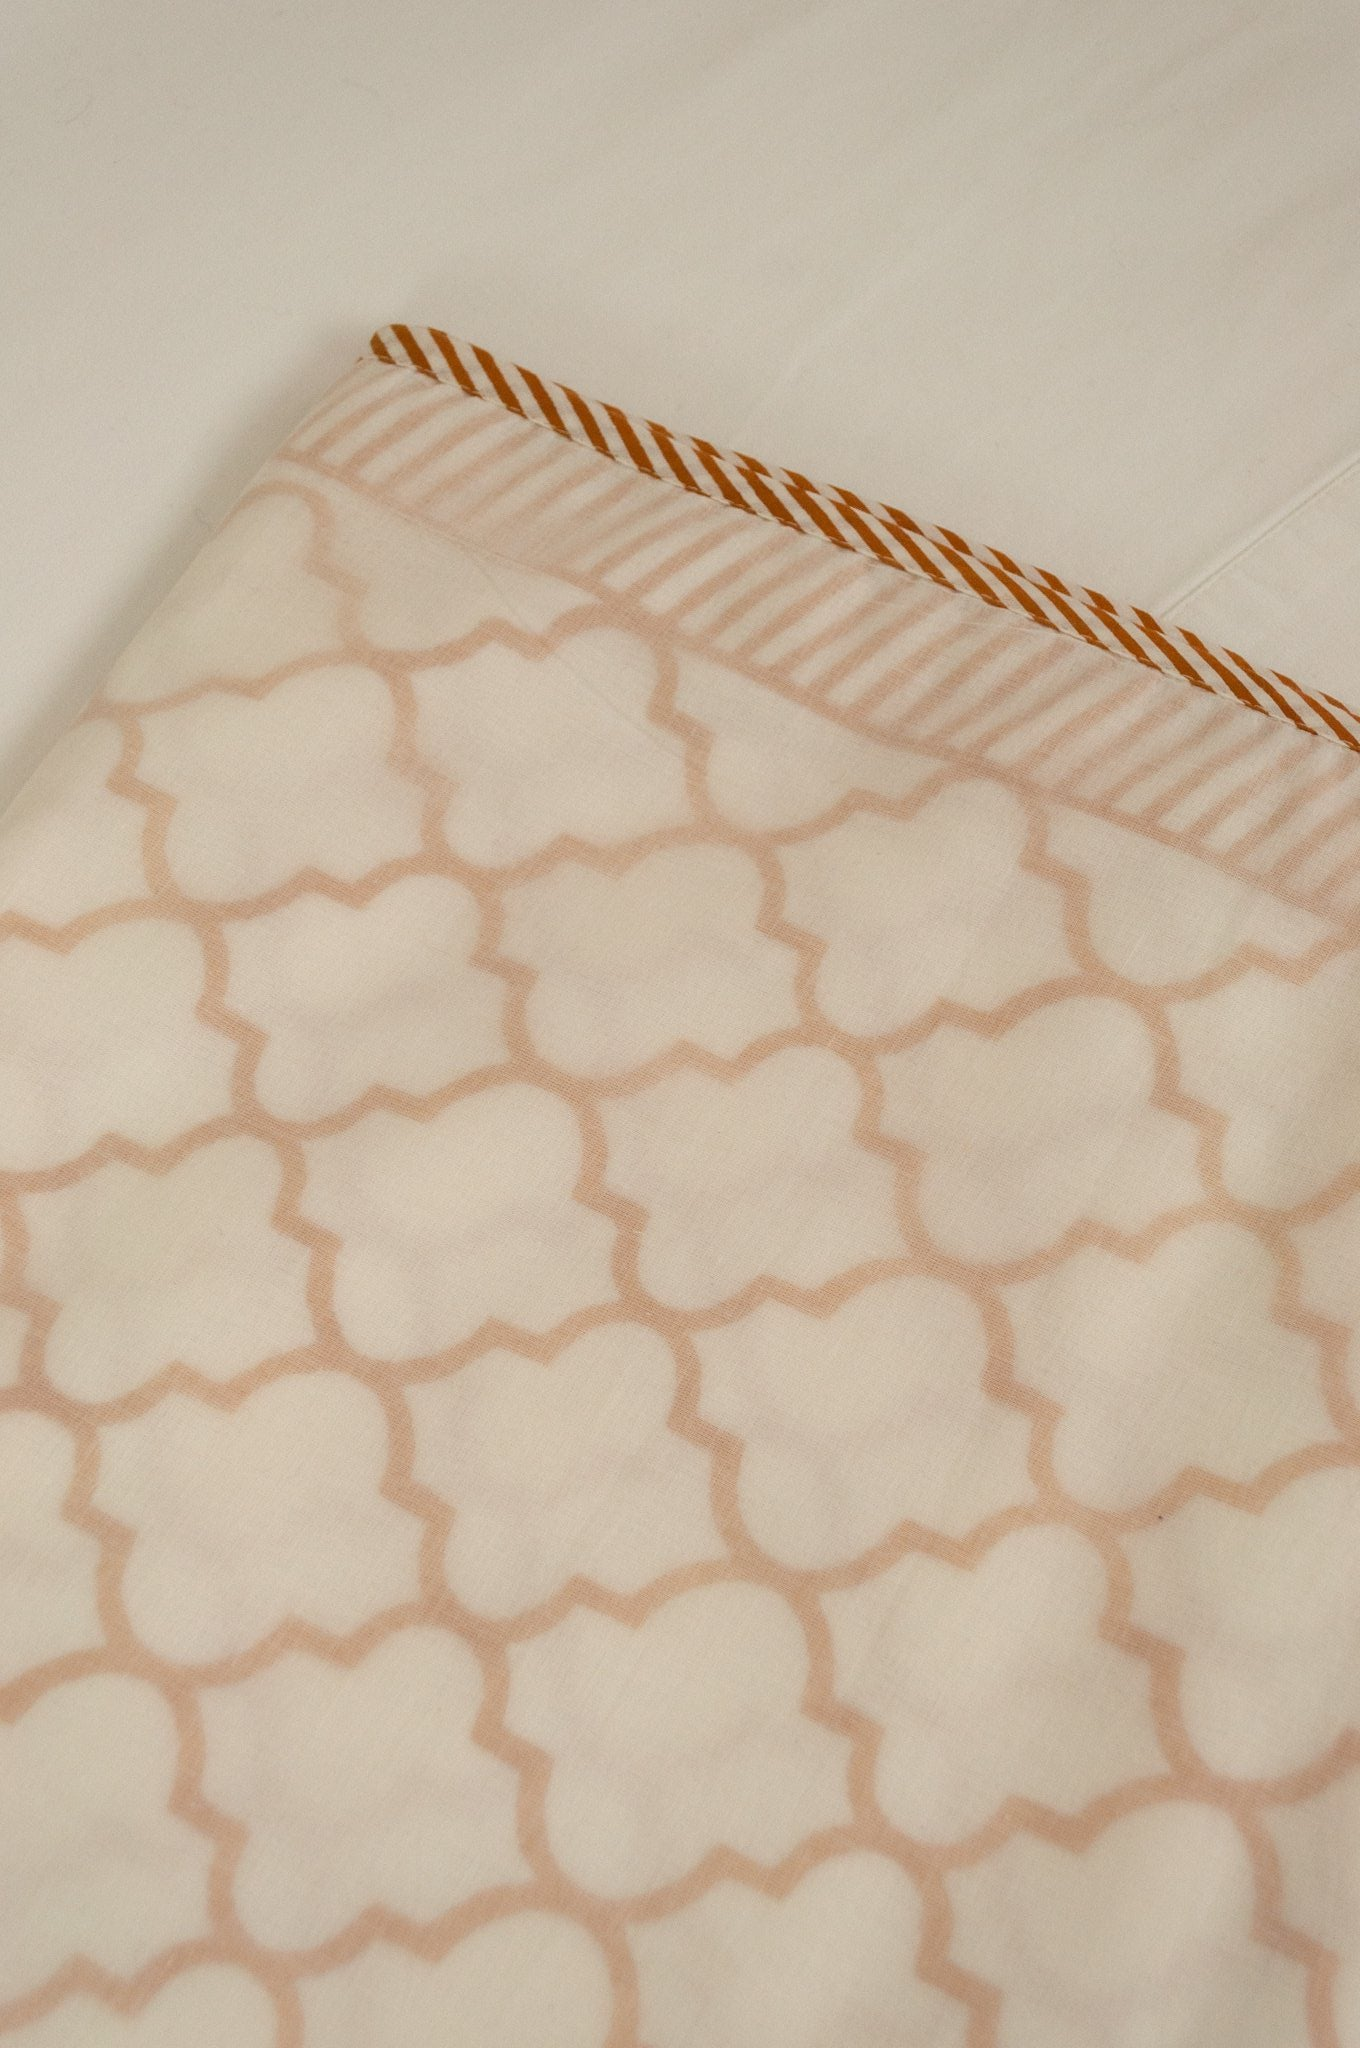 Soft cotton muslin layered dohar Queen King size bed quilt blankets, mustard tile pattern with stripe border.